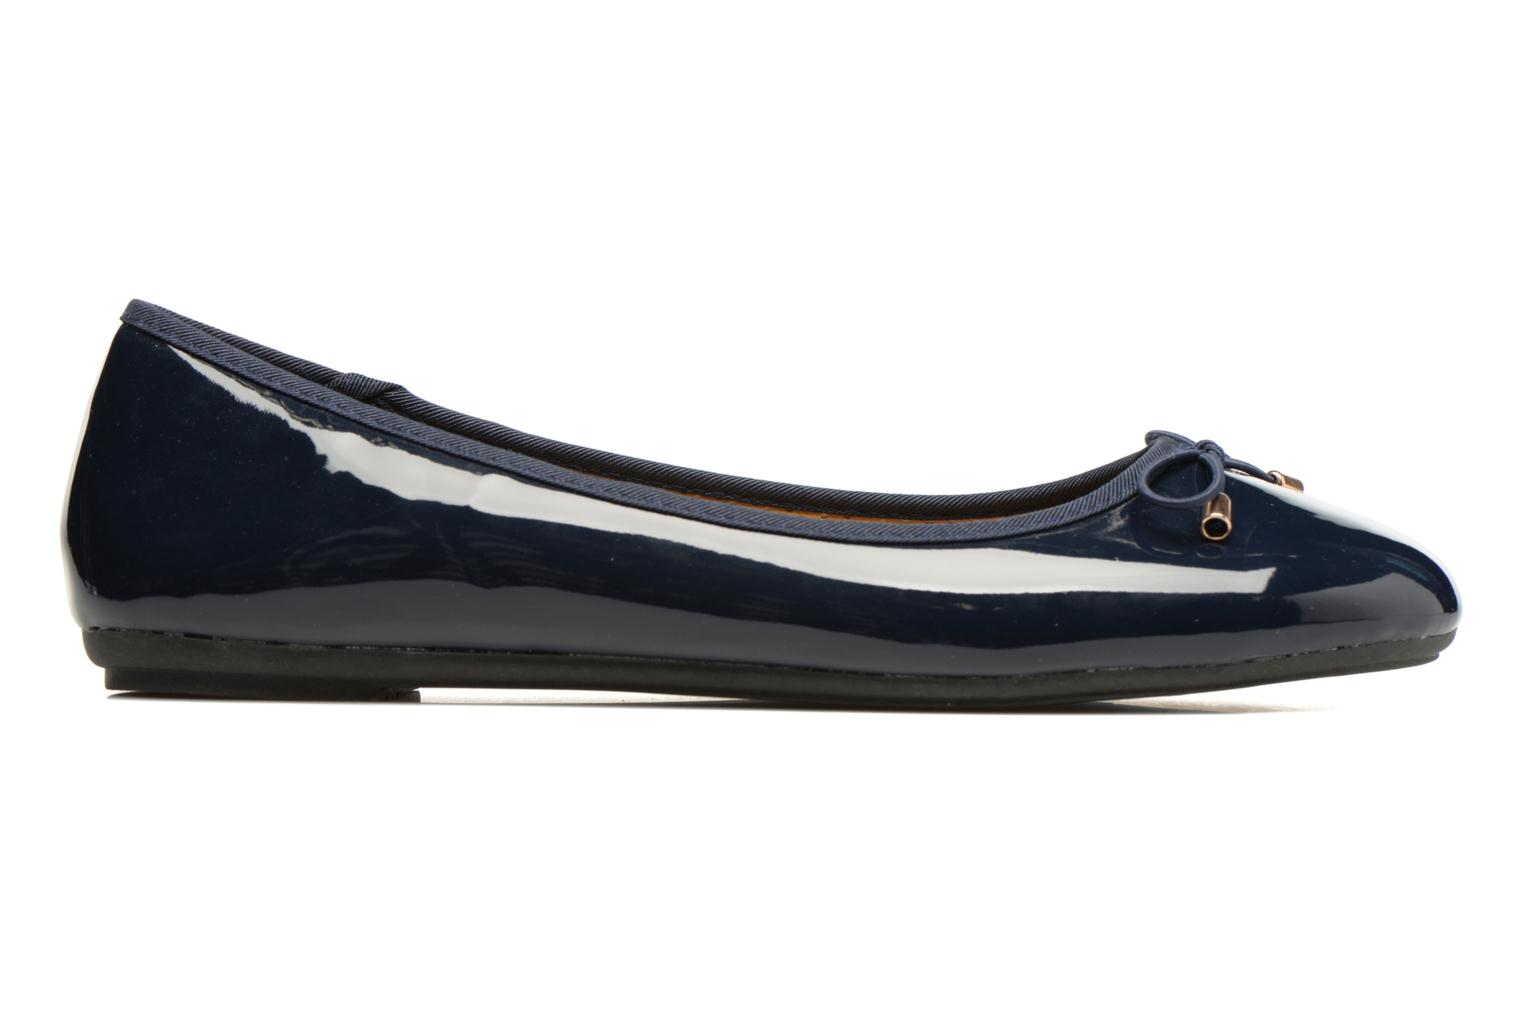 THAVE Size + Navy Patent